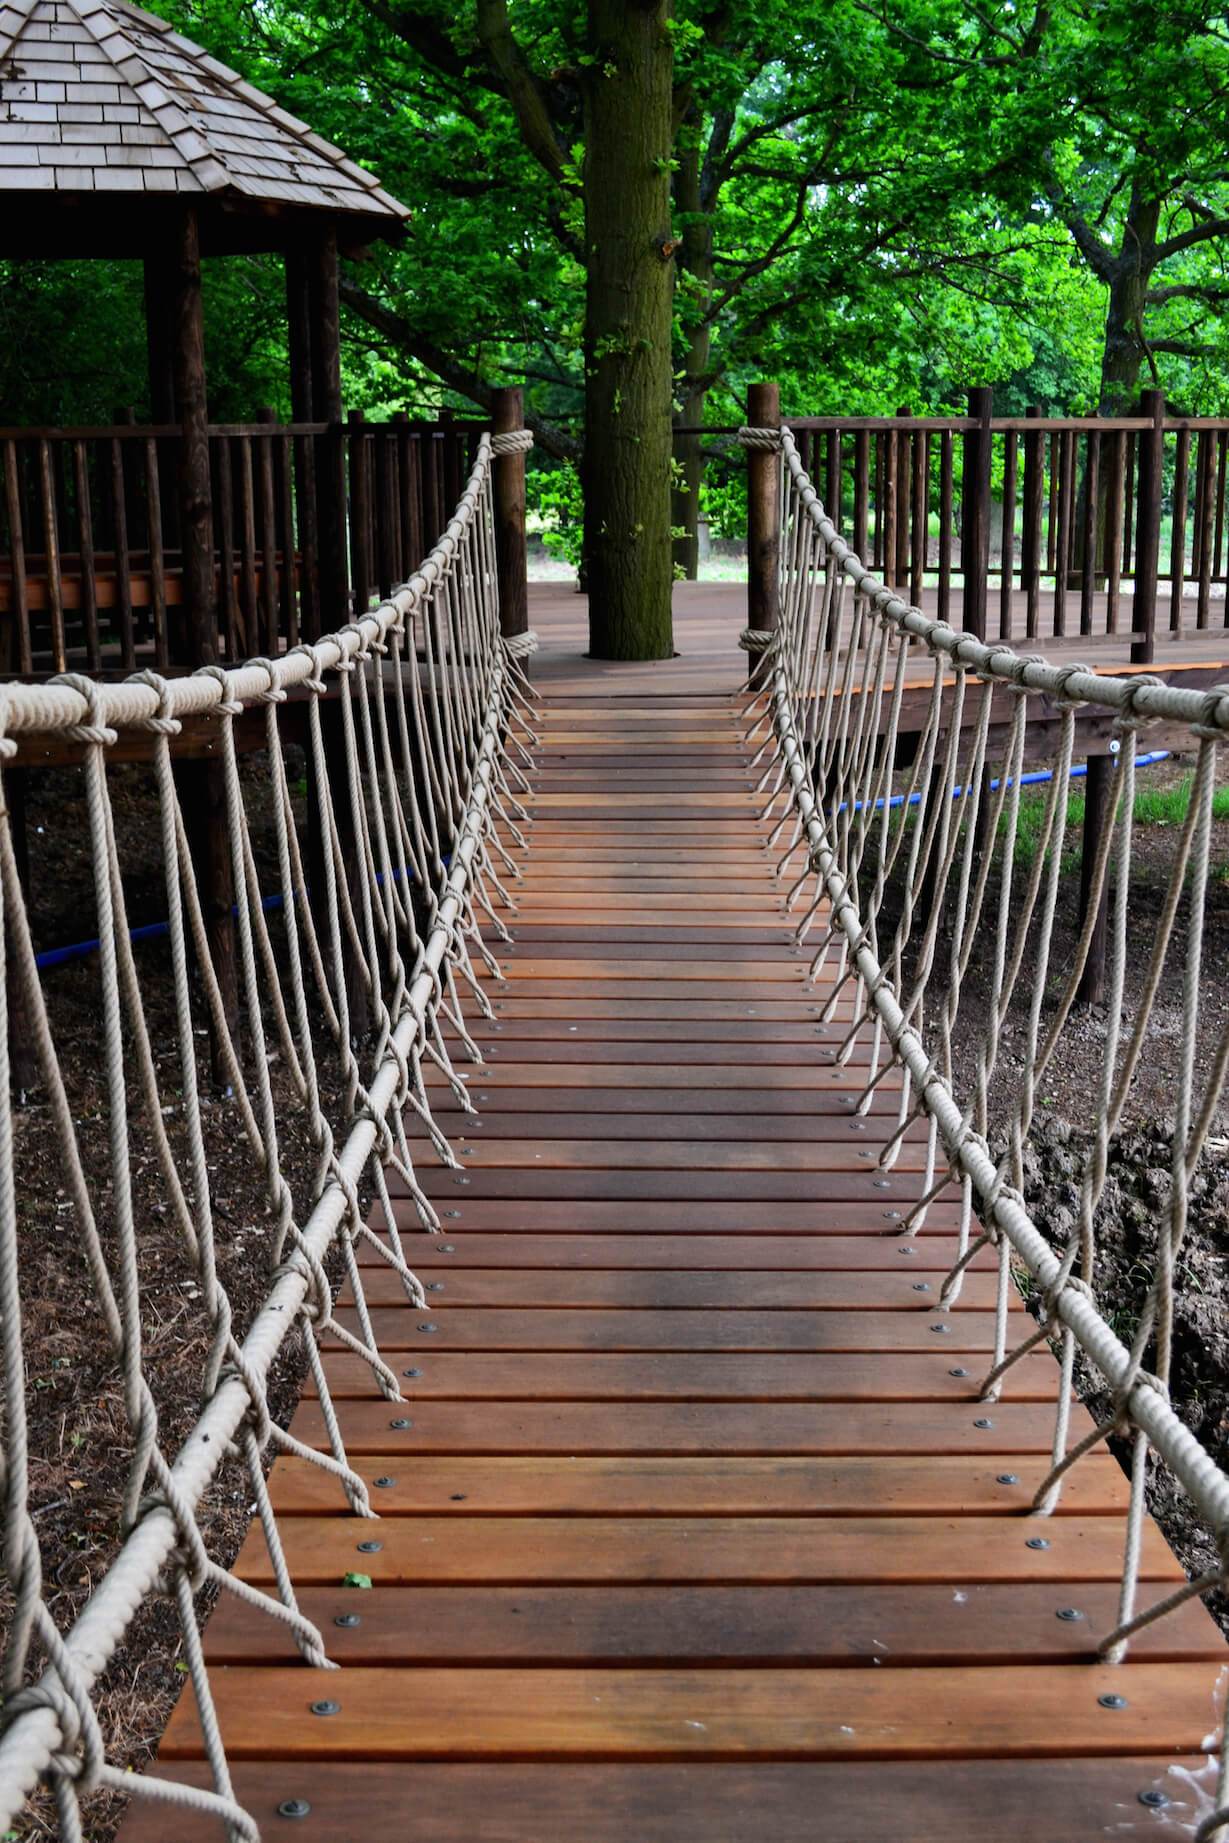 The fantastic rope bridge connects the home to this discrete platform, housing a gazebo and leading to the adventure trail.